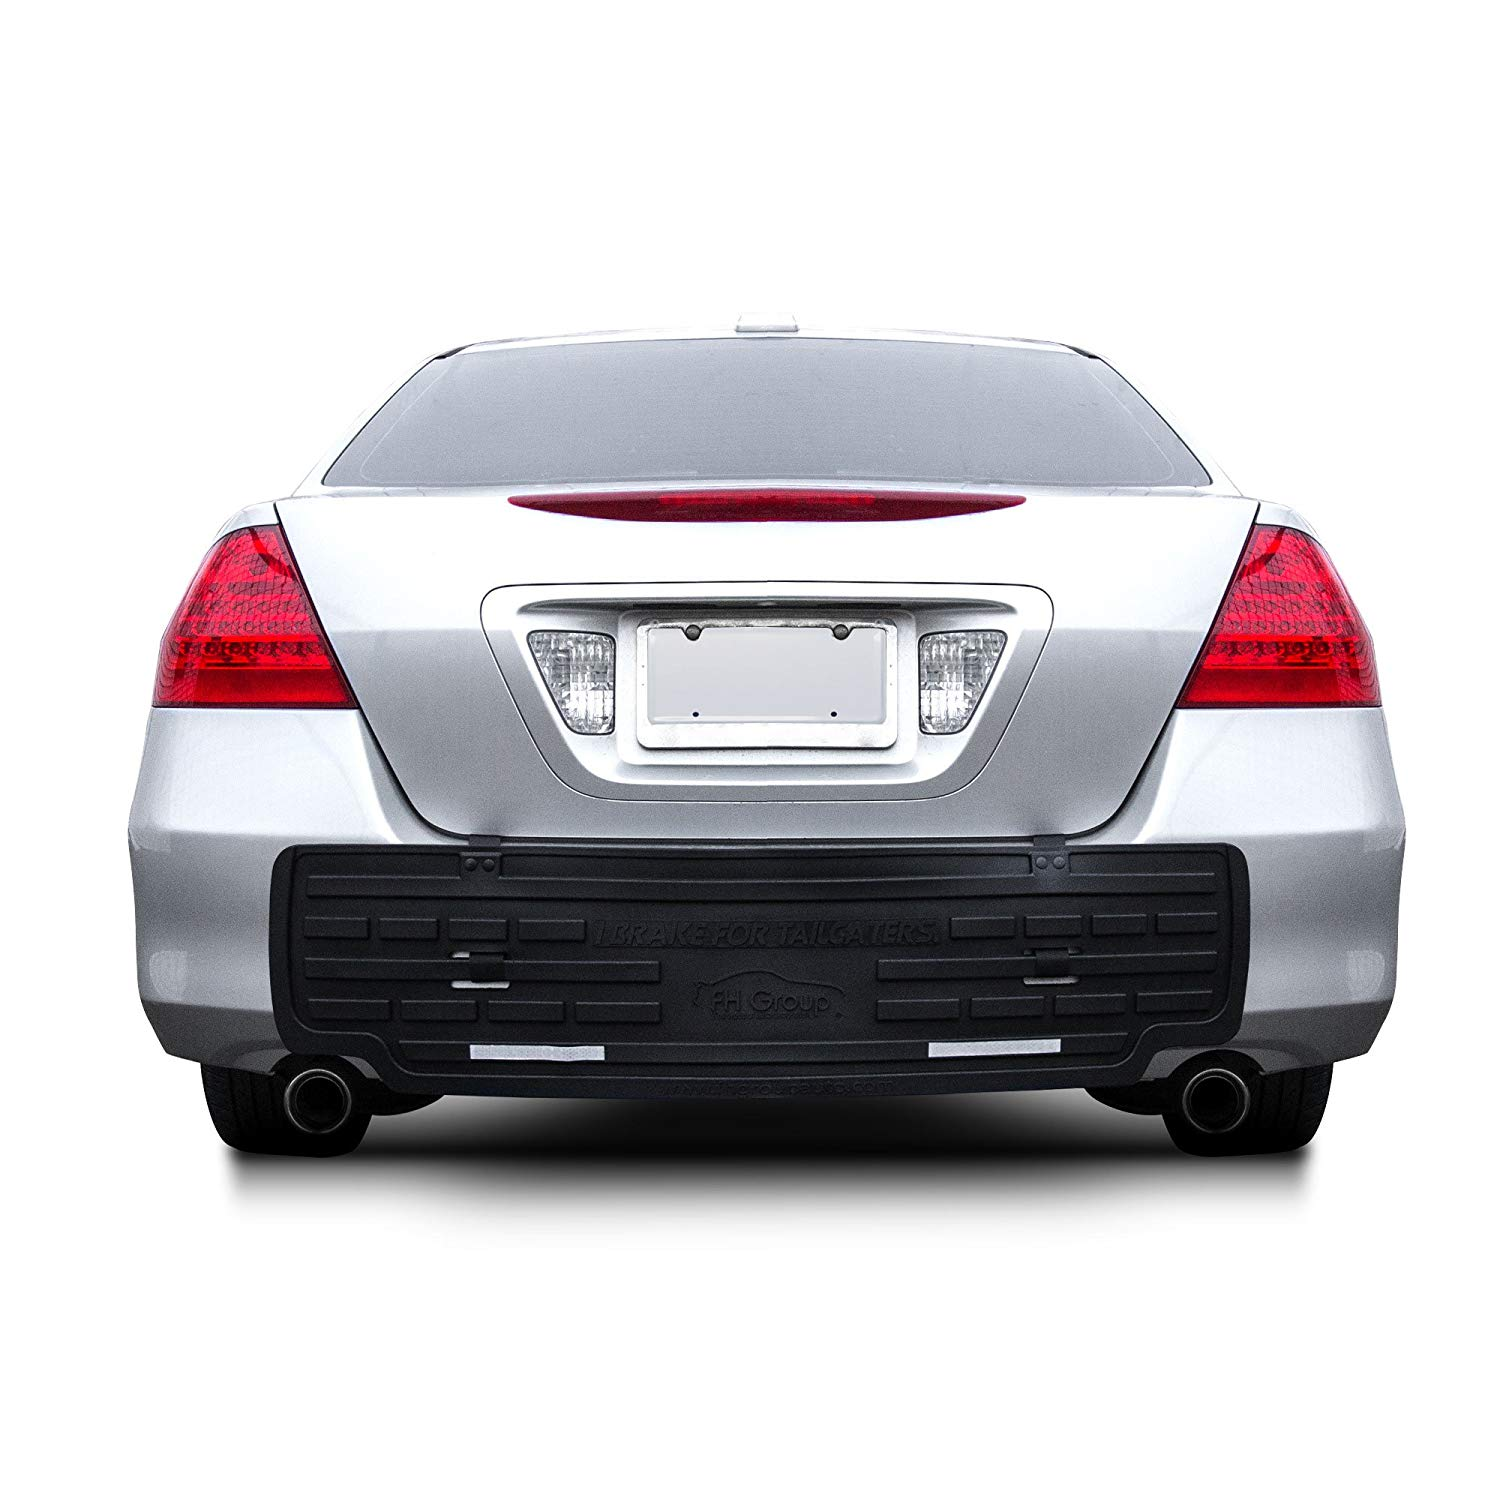 FH Group F16408 Universal Fit Rear Bumper Butler Bumper Guard Protector